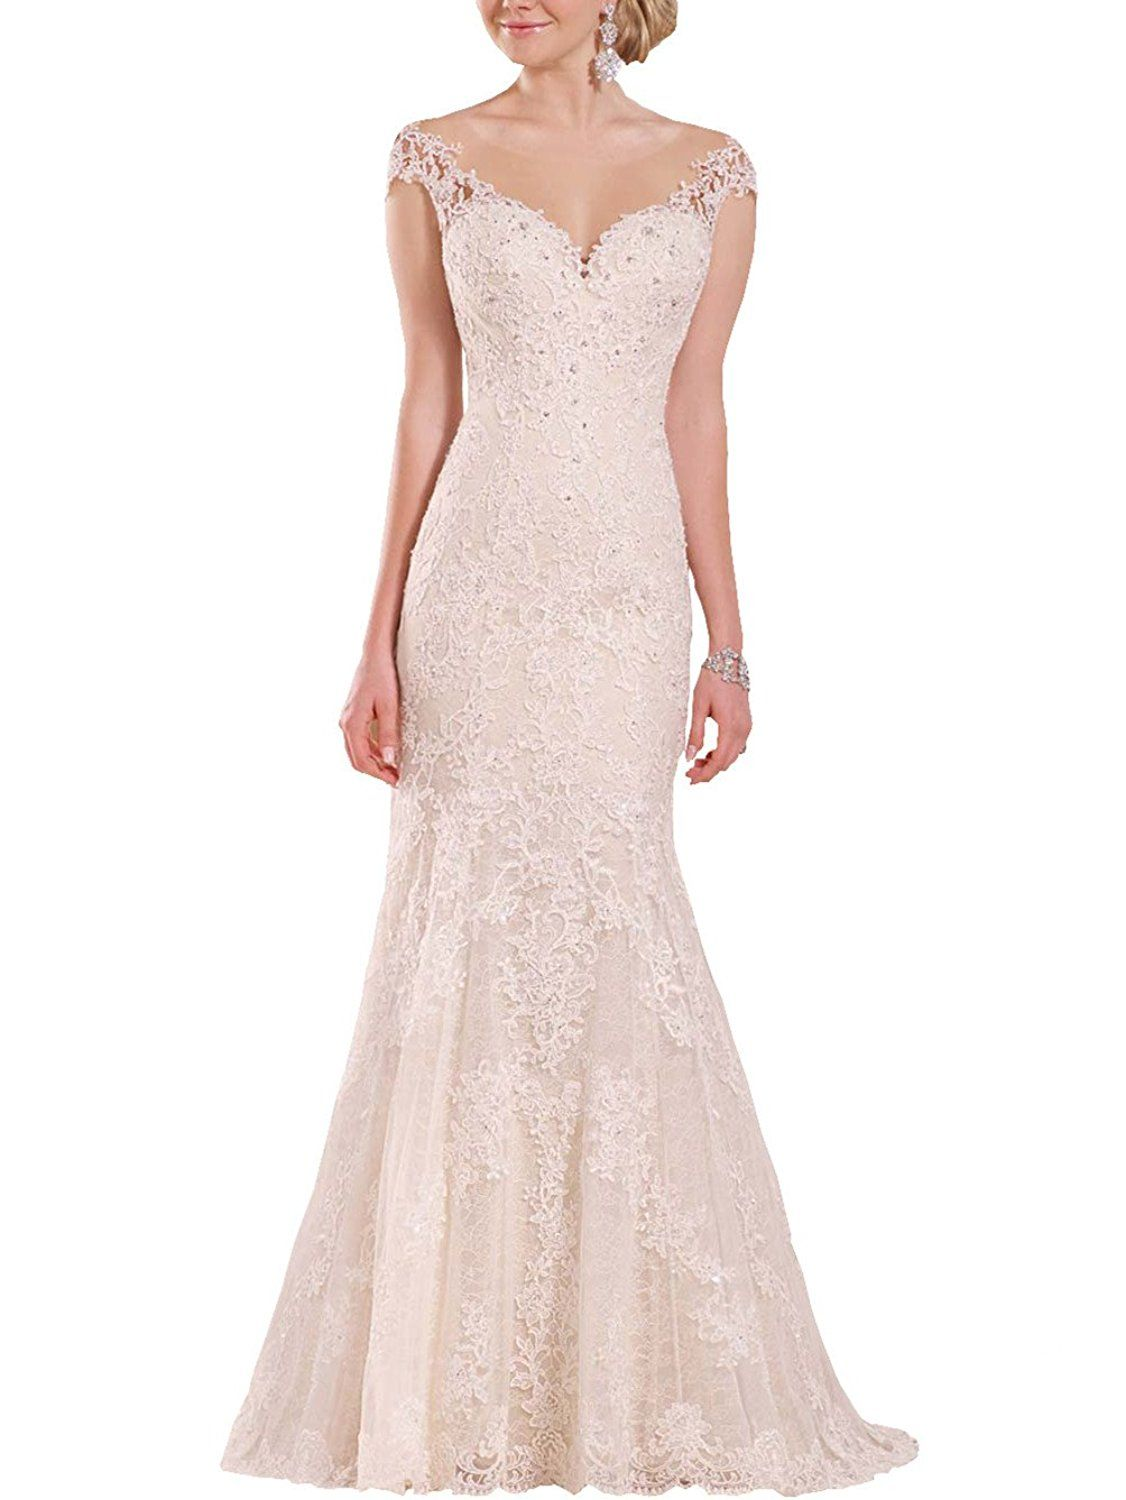 Lace dress gown  Changjie Womenus Cap Sleeves Beadiing Bridal Gown Lace Applique